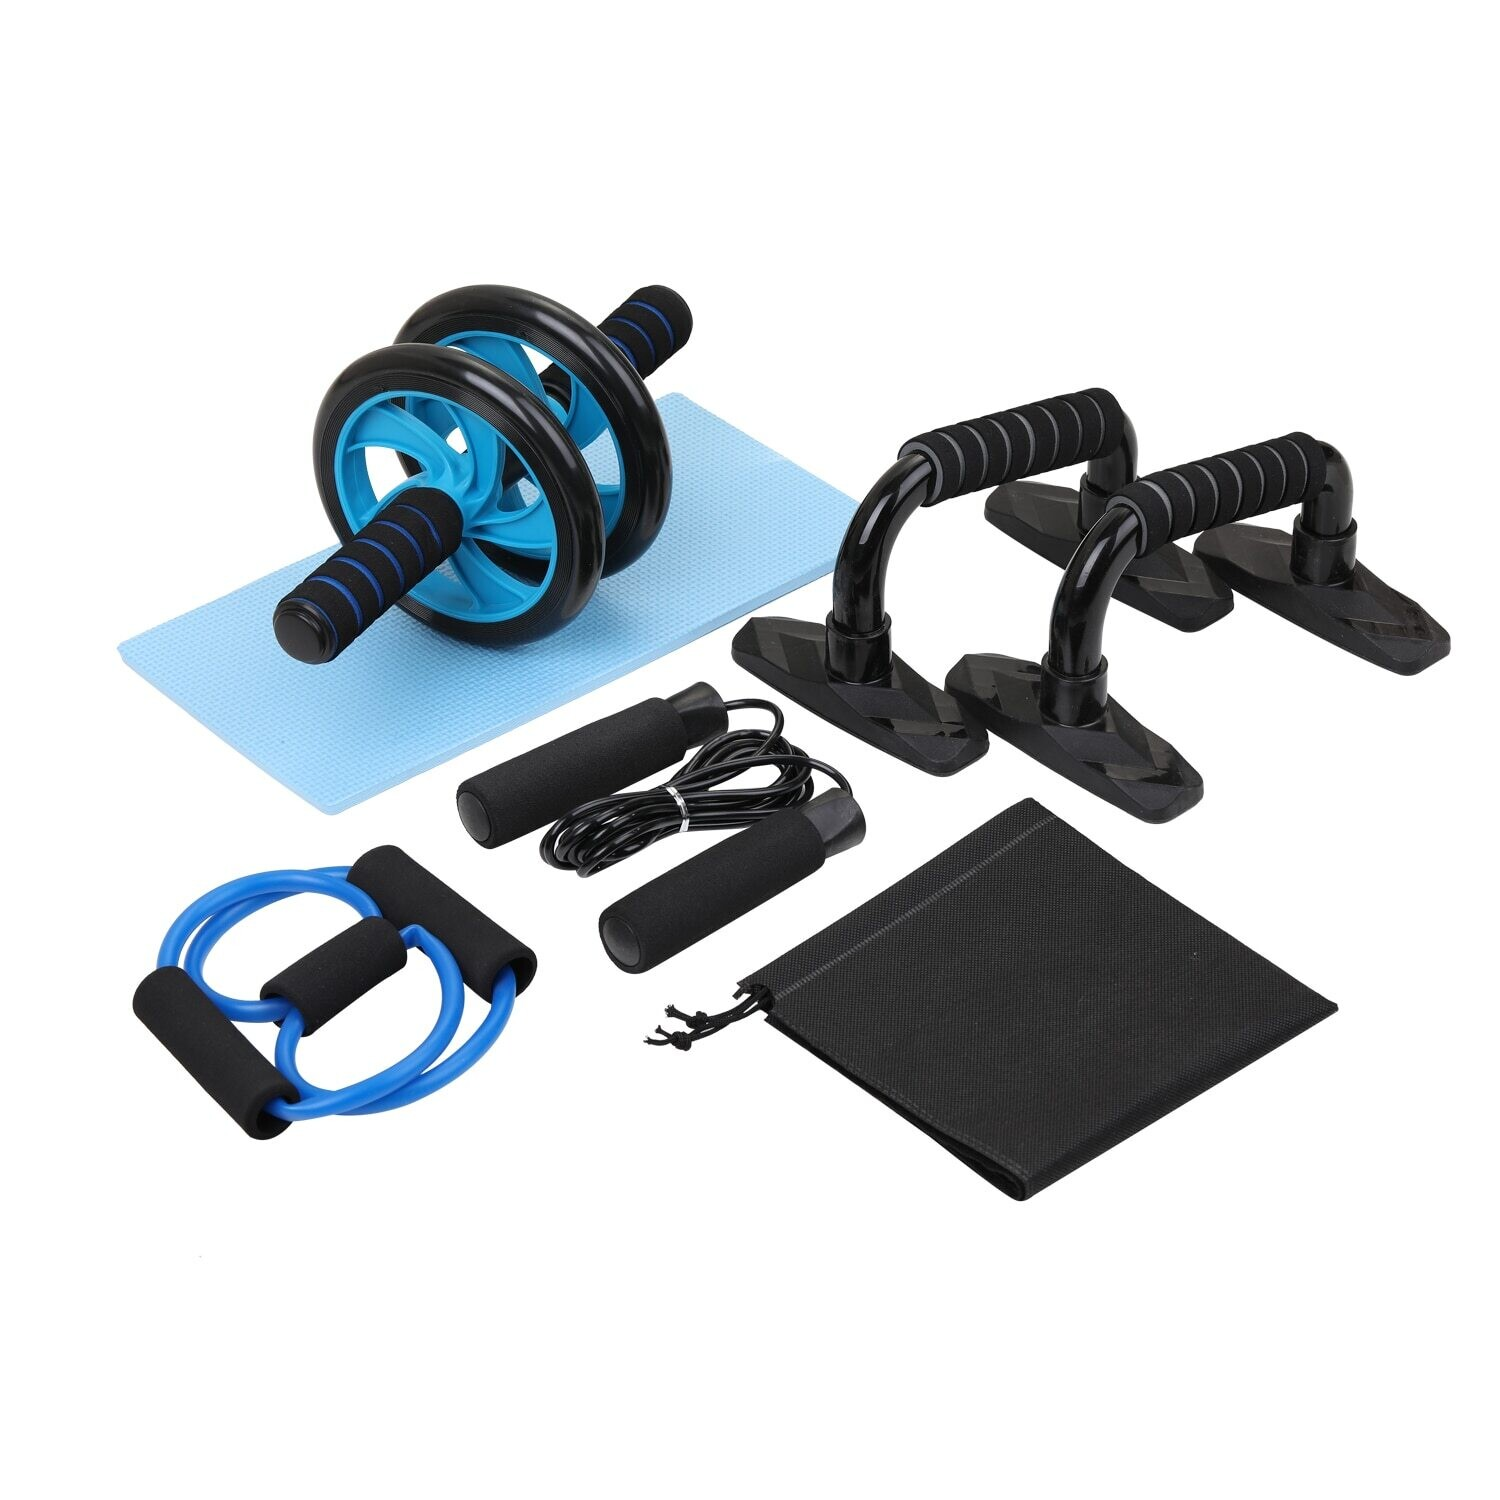 5in1 AB Wheel Roller Kit Push-ups Stands Abdominal Press Wheel Pro w/ Push-UP Bar Jump Rope Knee Pad abs workout for Home Gym